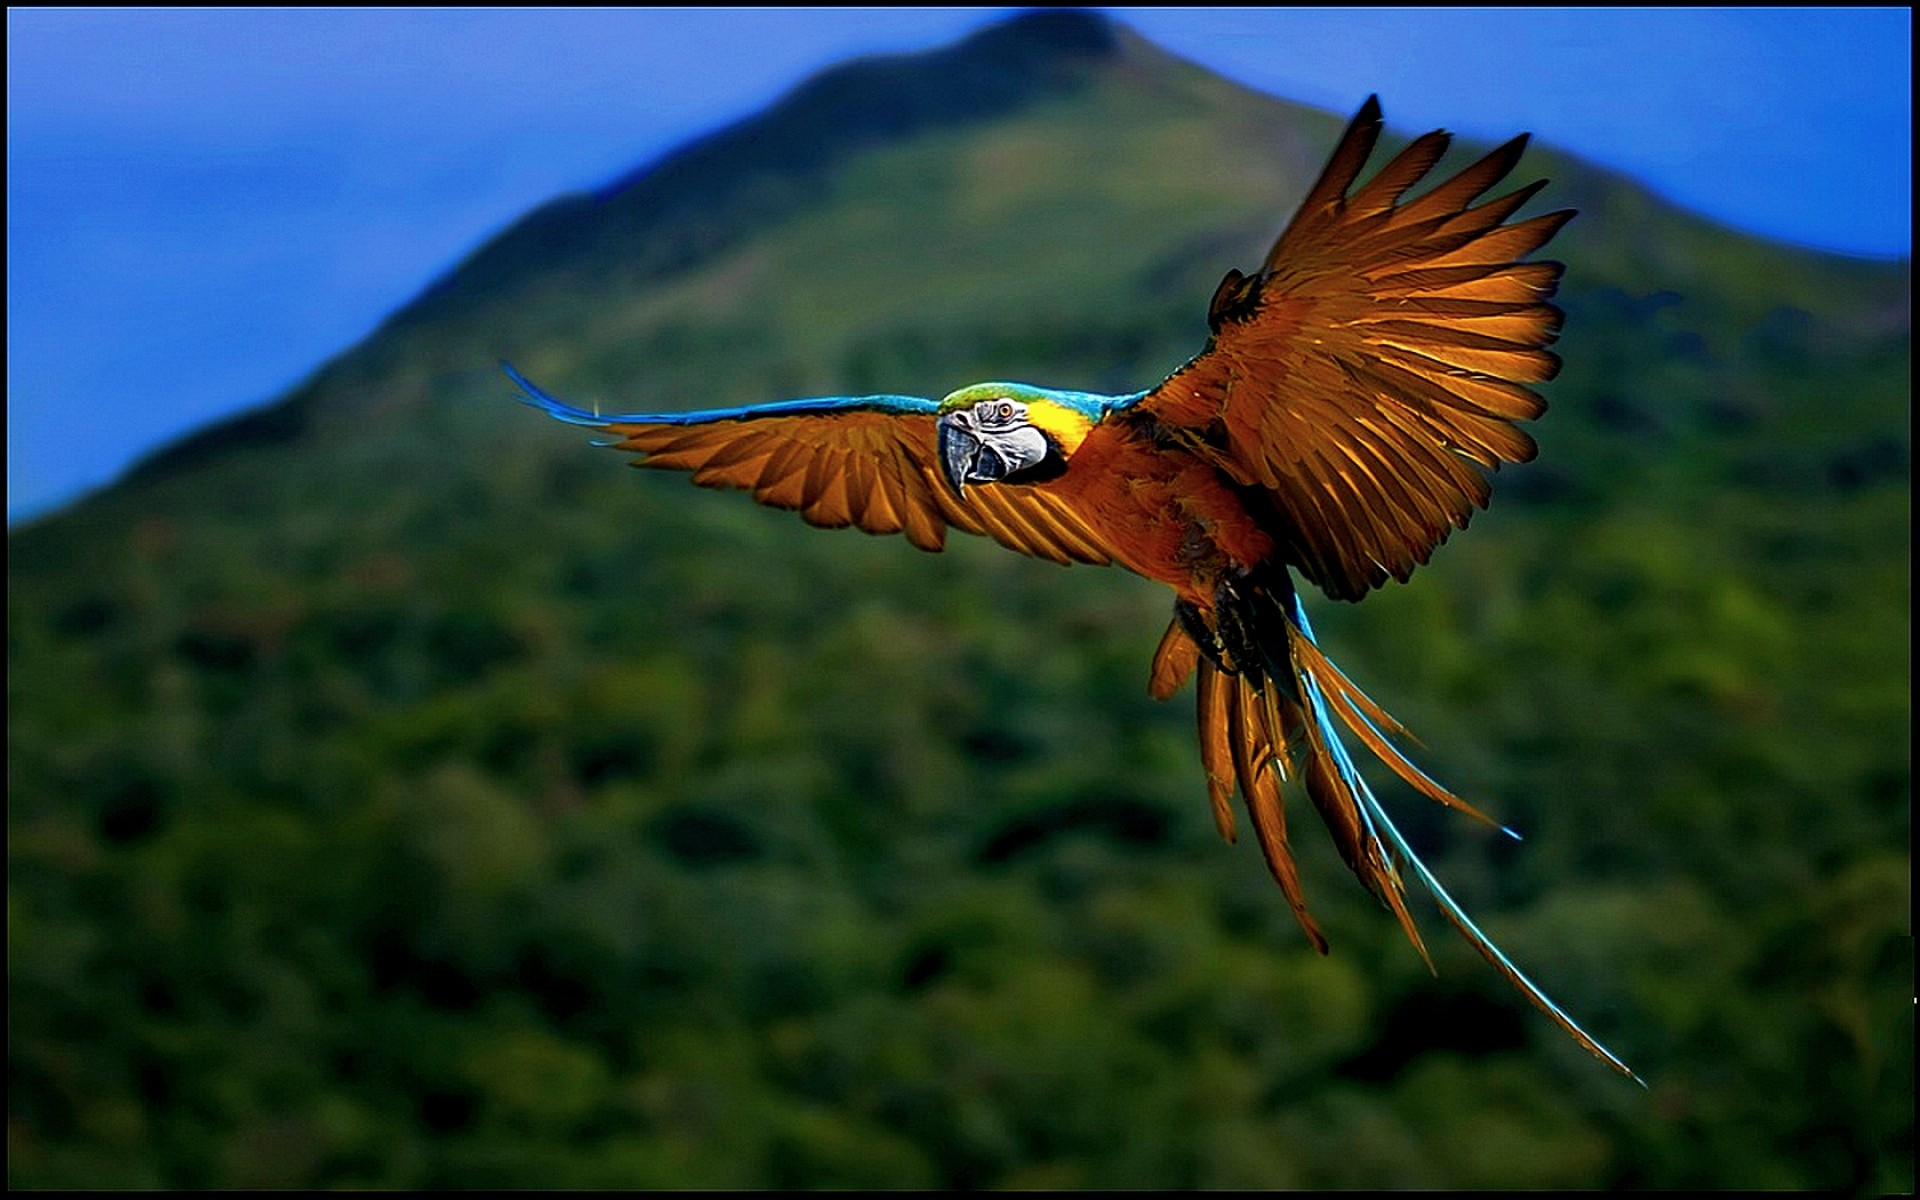 Blue and yellow macaw hd wallpaper background image - National geographic wild wallpapers ...